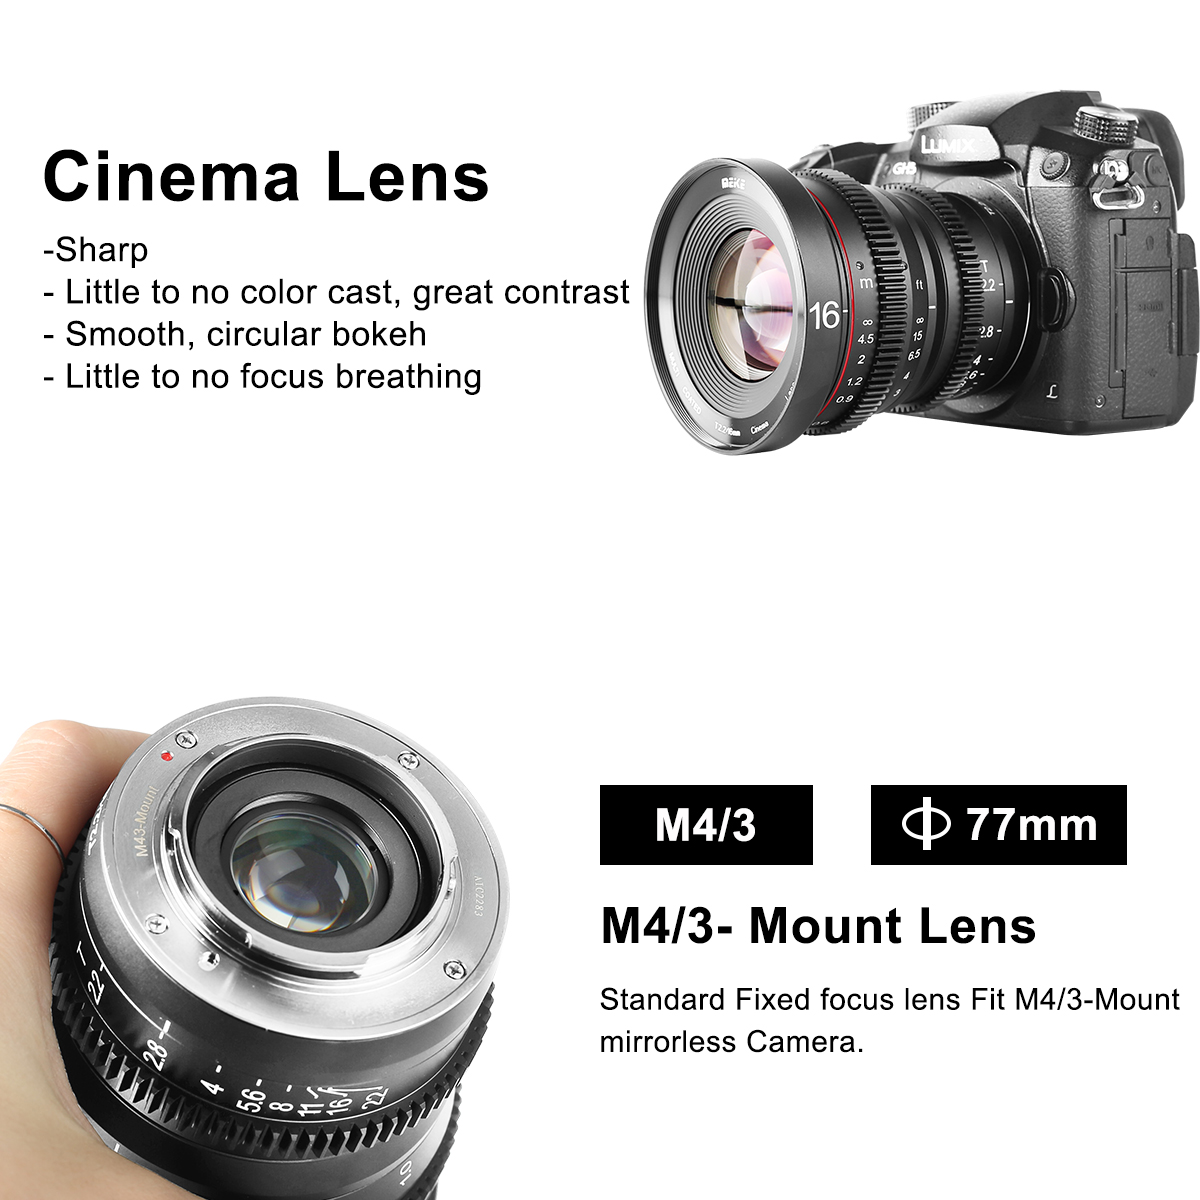 Lens MEIKE 16mm T2.2 Manual Focus Cine Lens for M4/3